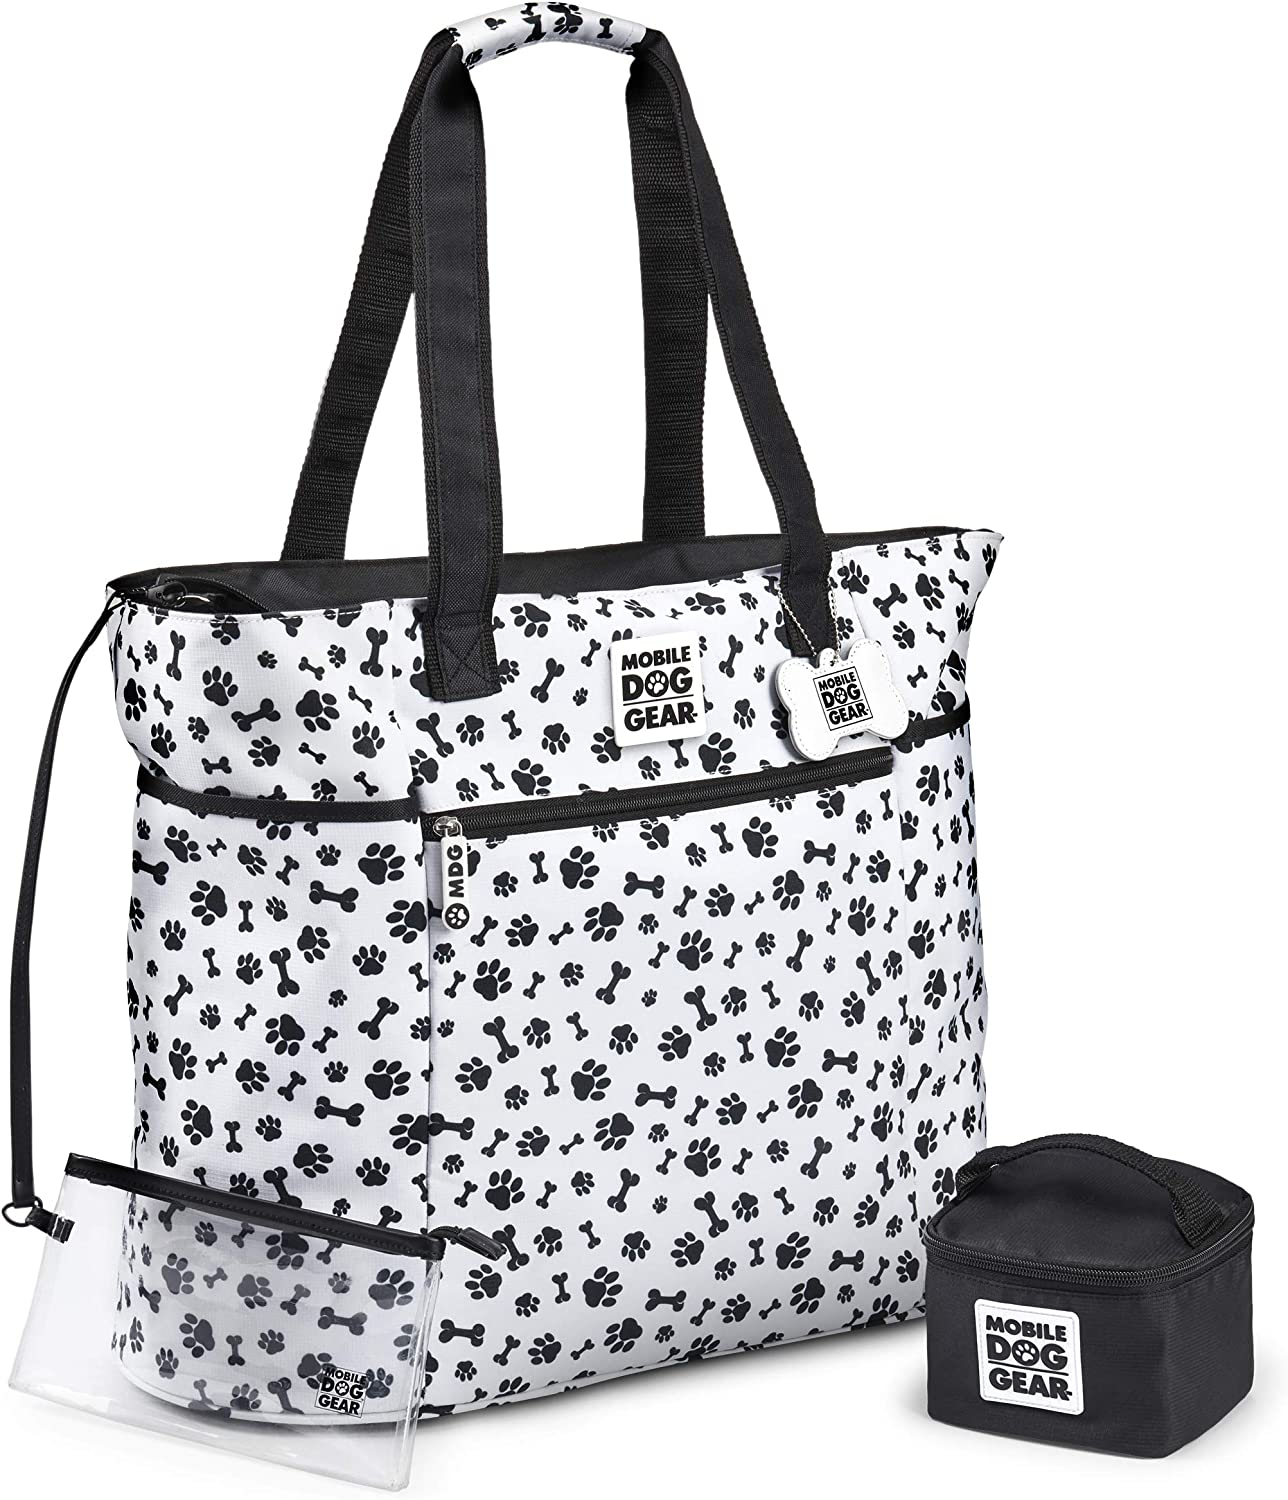 Mobile Dog Gear, Dogssentials Dog Tote Travel Bag, Carry Items for Both You and Your Dog, Includes Lined Food Carrier and Clear Wristlet Pouch, White/Black Paw Bone Print